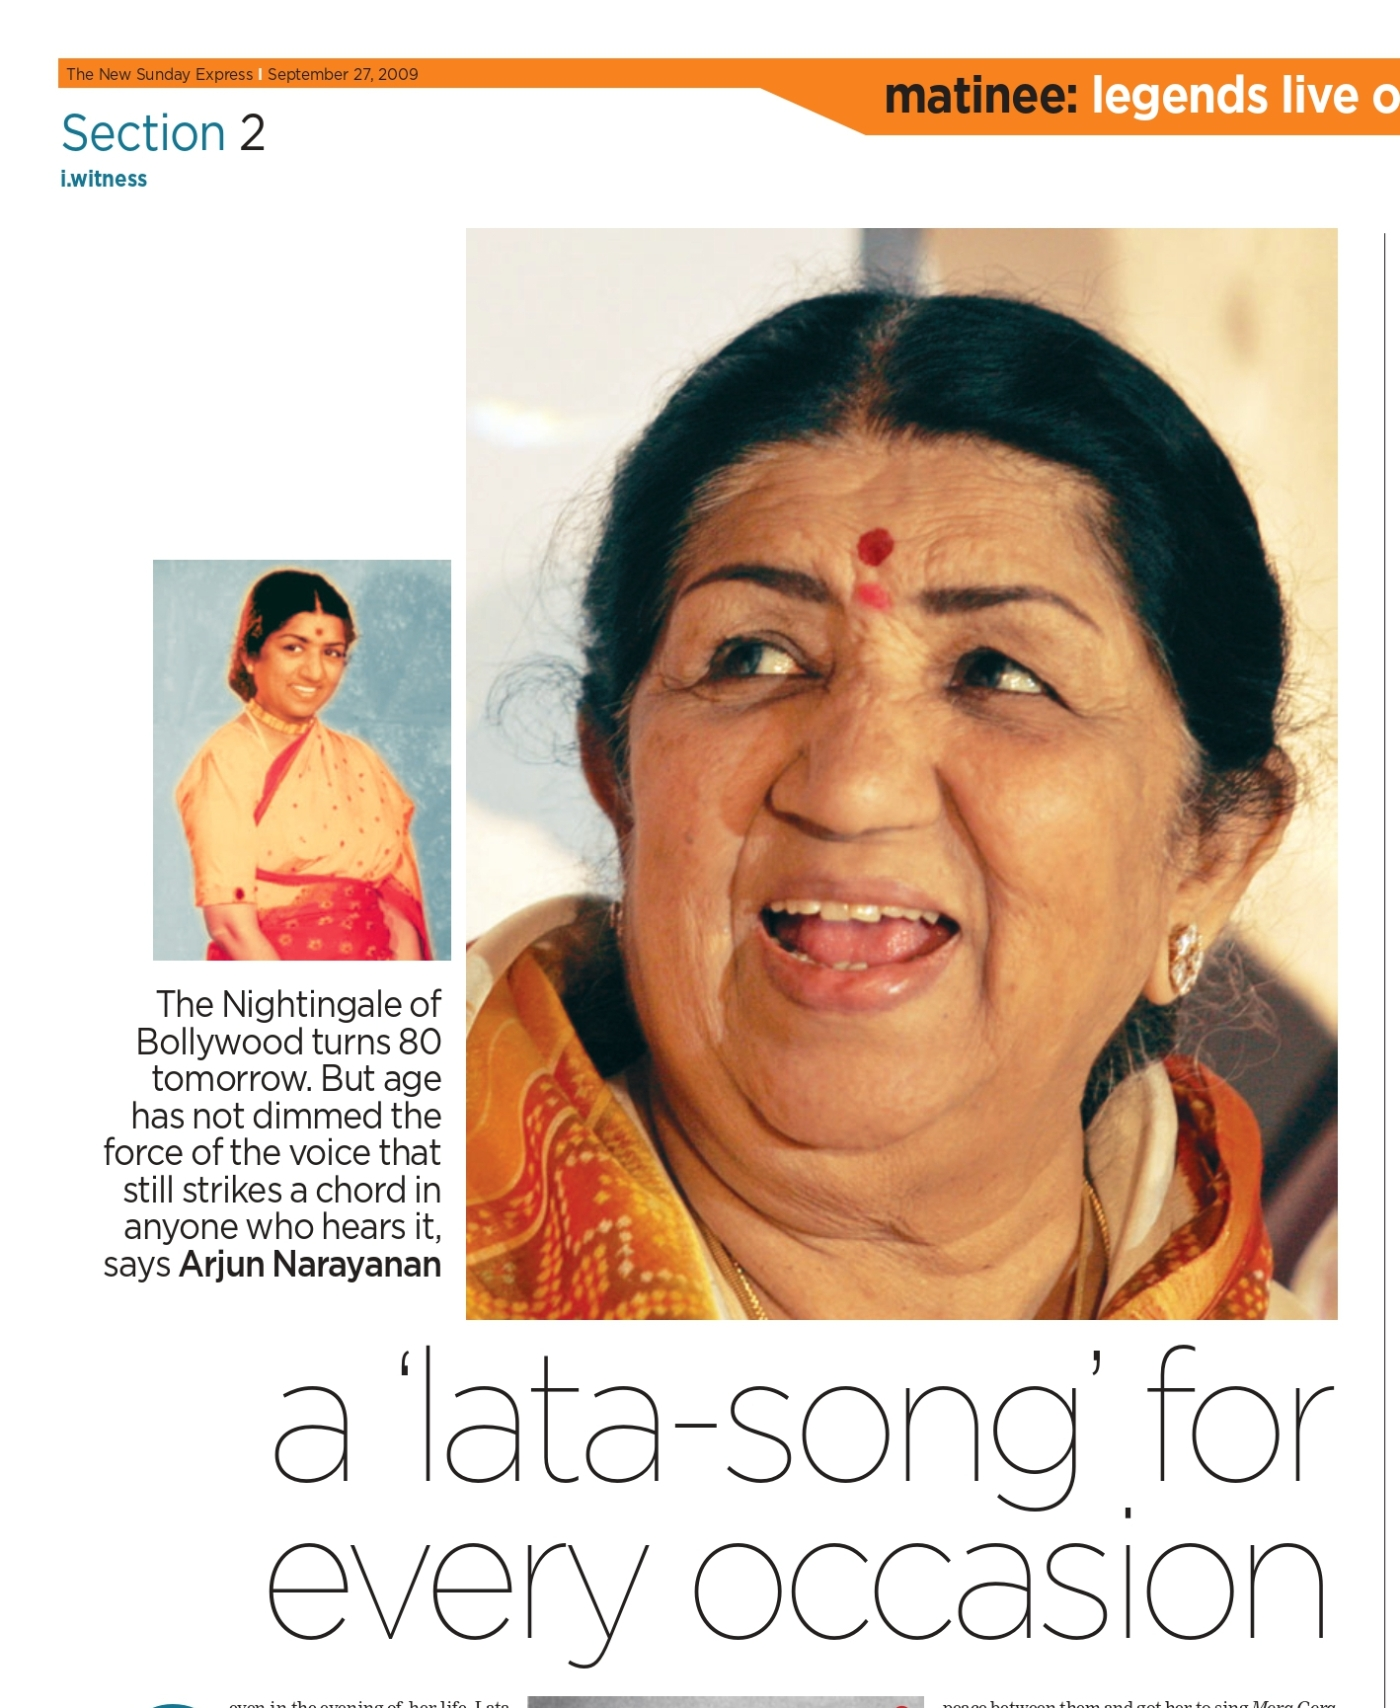 There is a Lata Mangeshkar song for every occasion